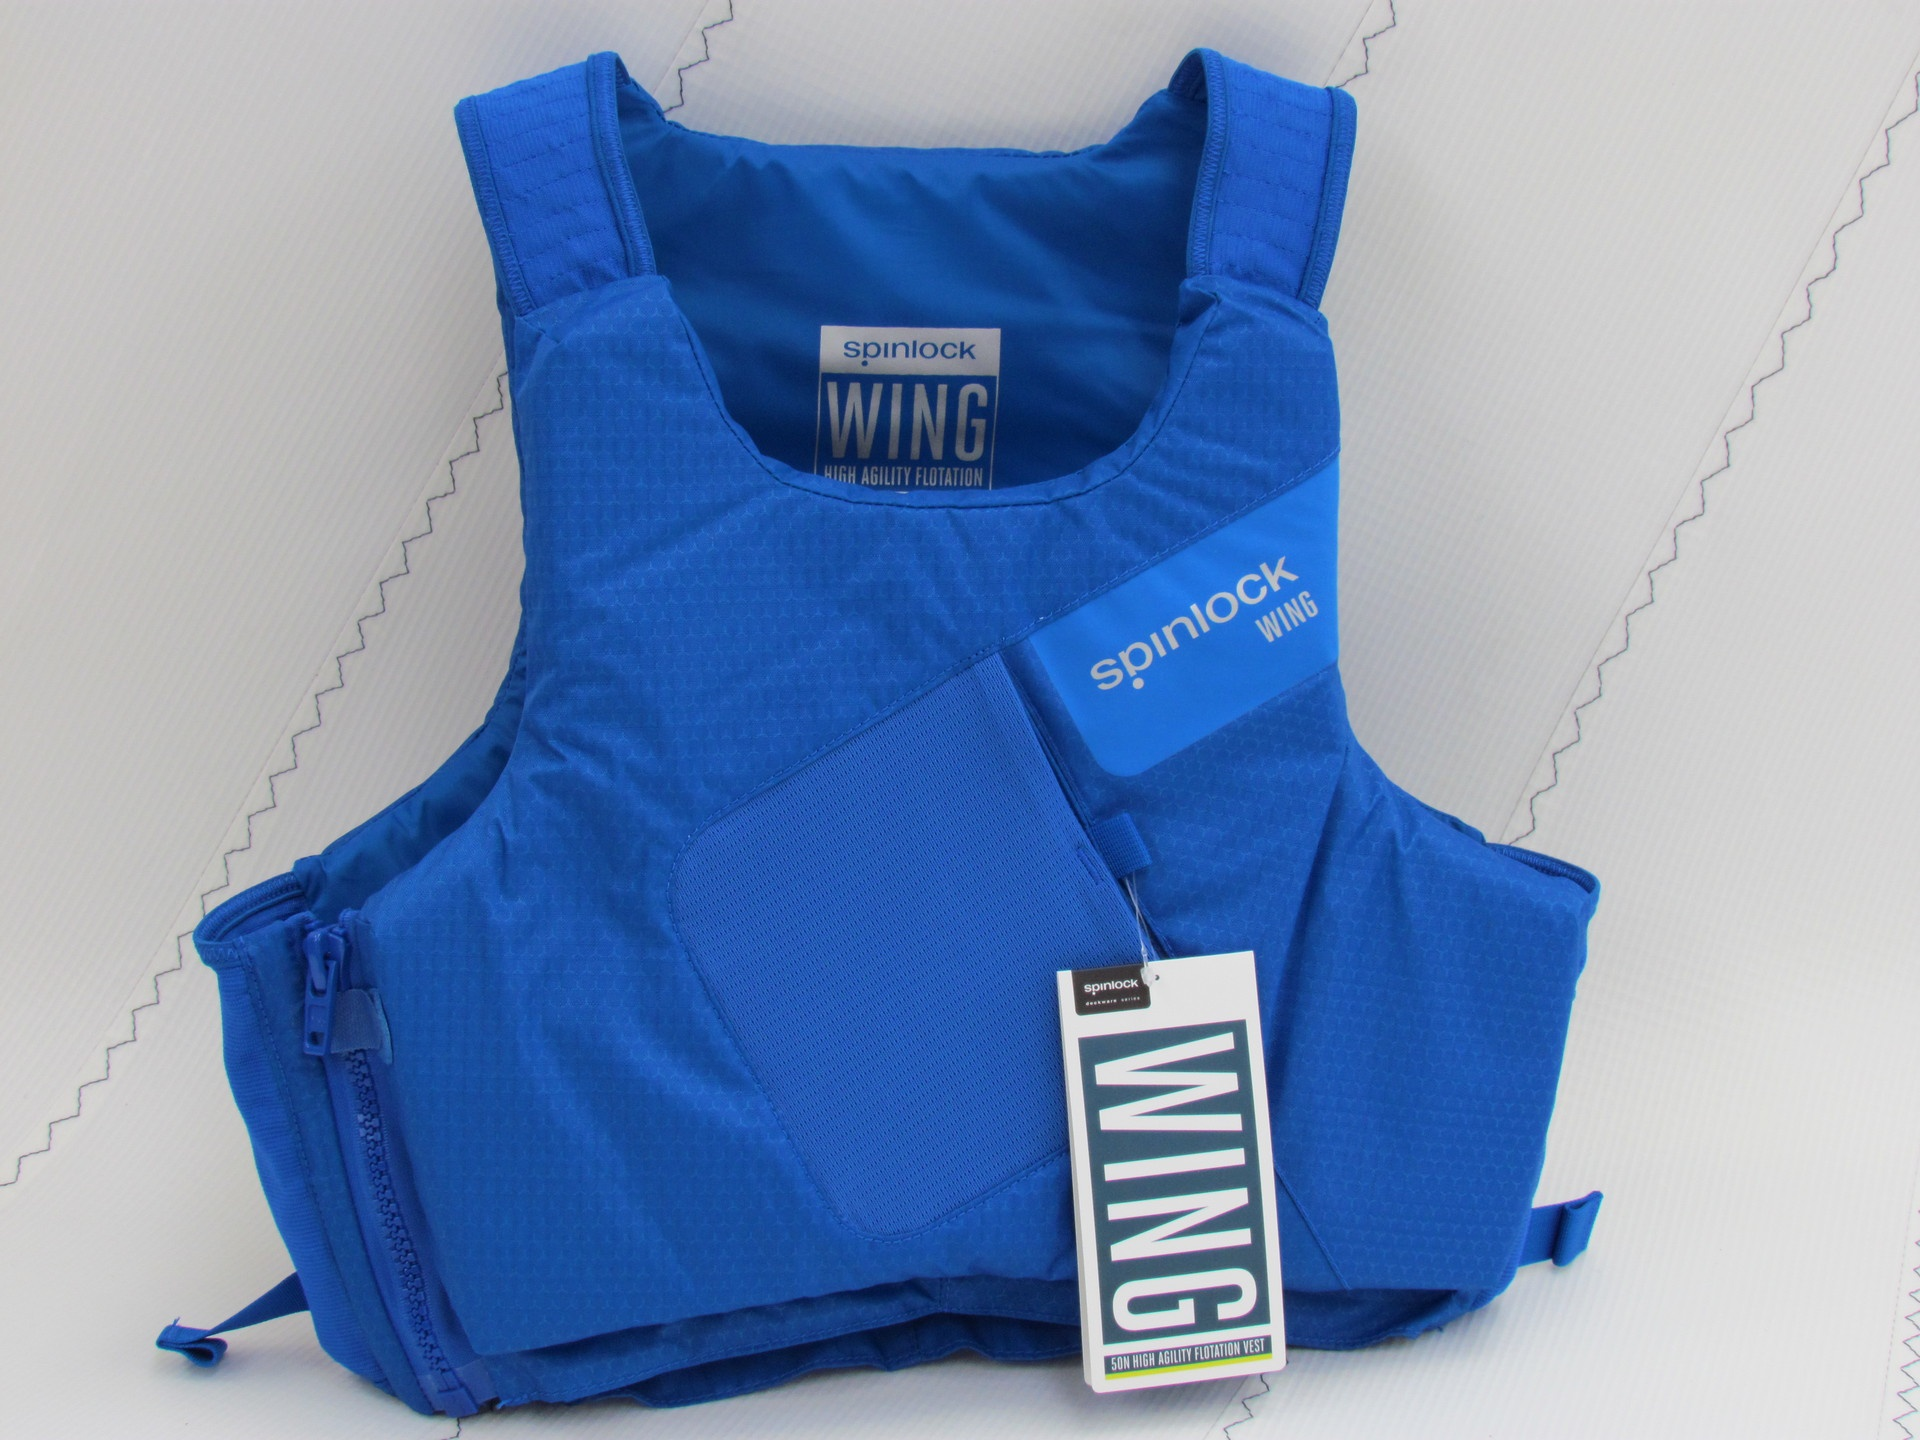 Spinlock Wing Side Zip PFD Cobalt Blue Size: X Large